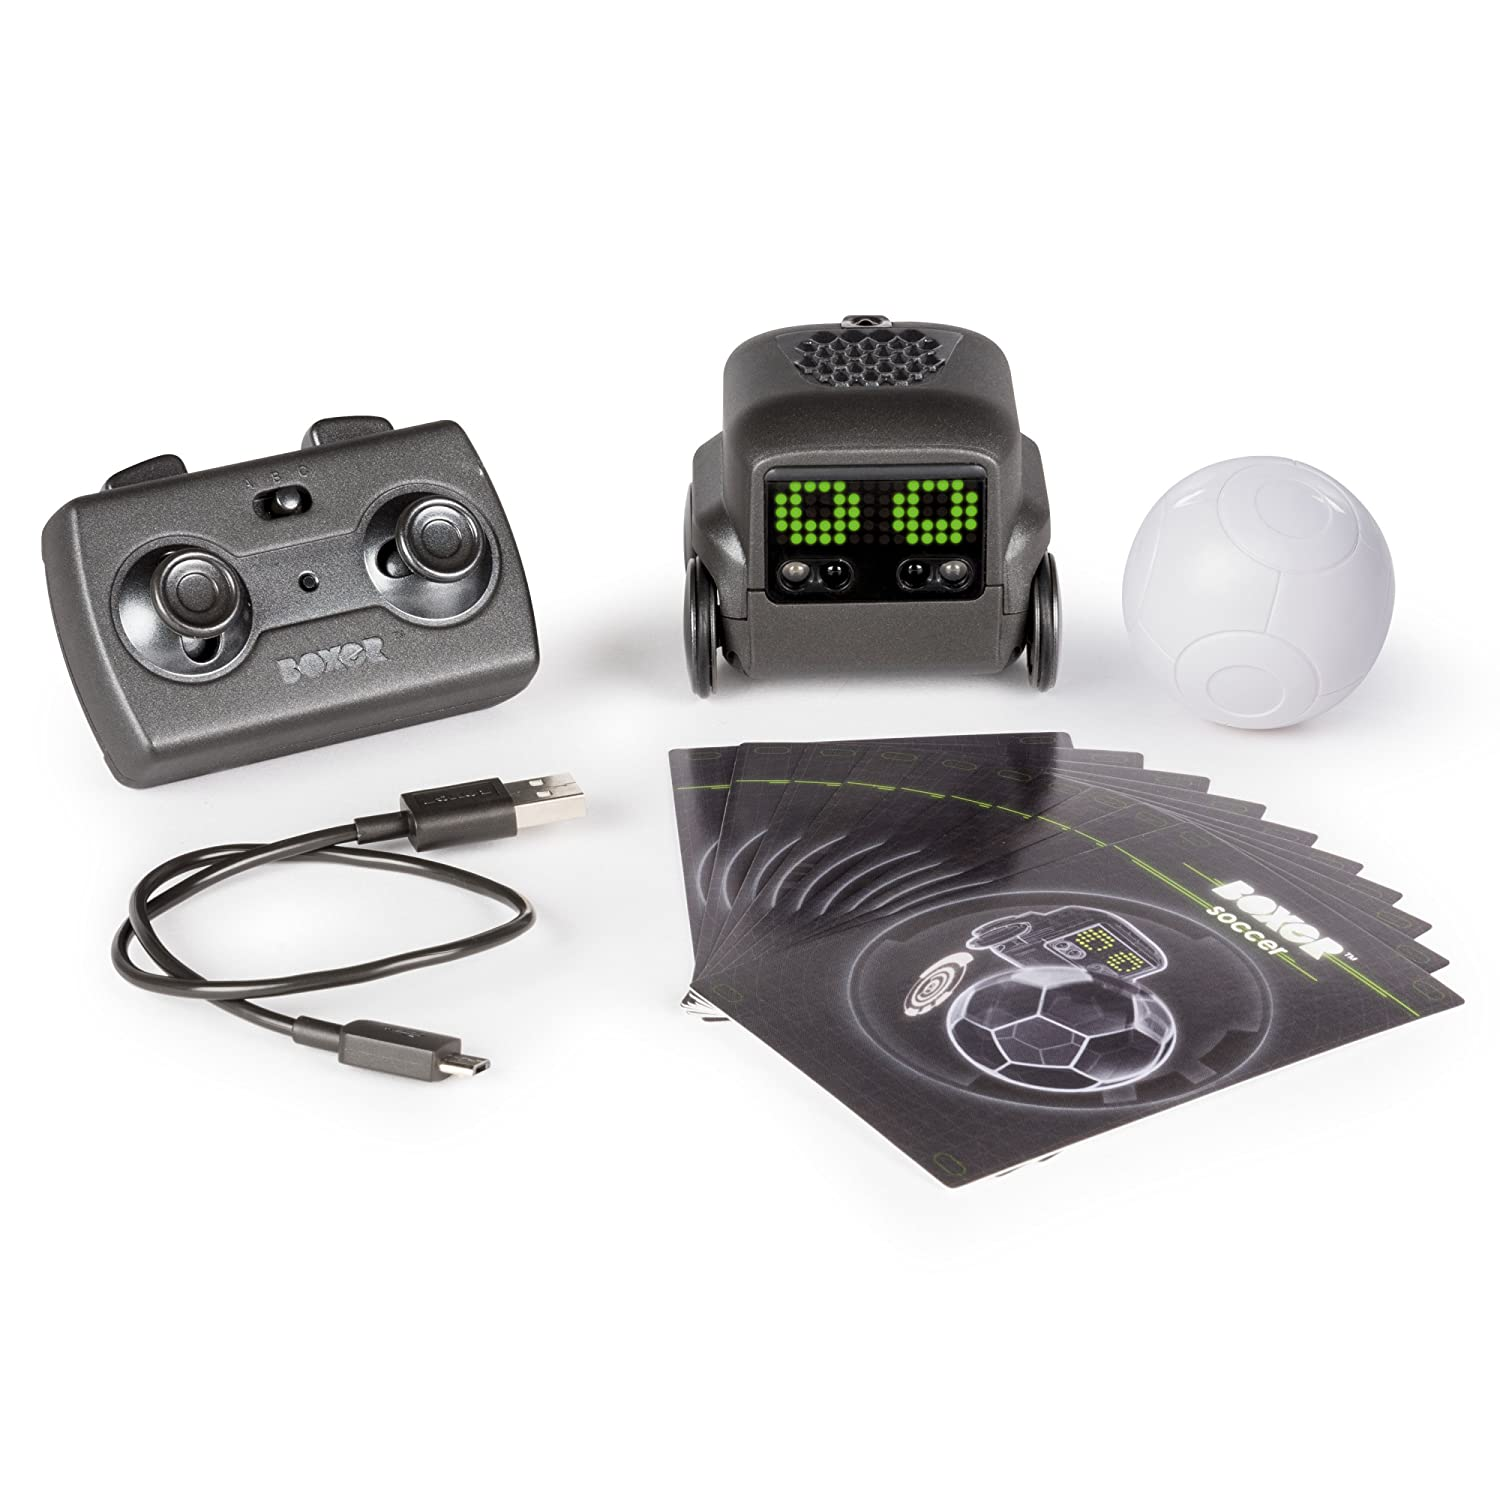 with Personality and Emotions Black for Ages 6 and Up Boxer /— Interactive AI Robot Toy